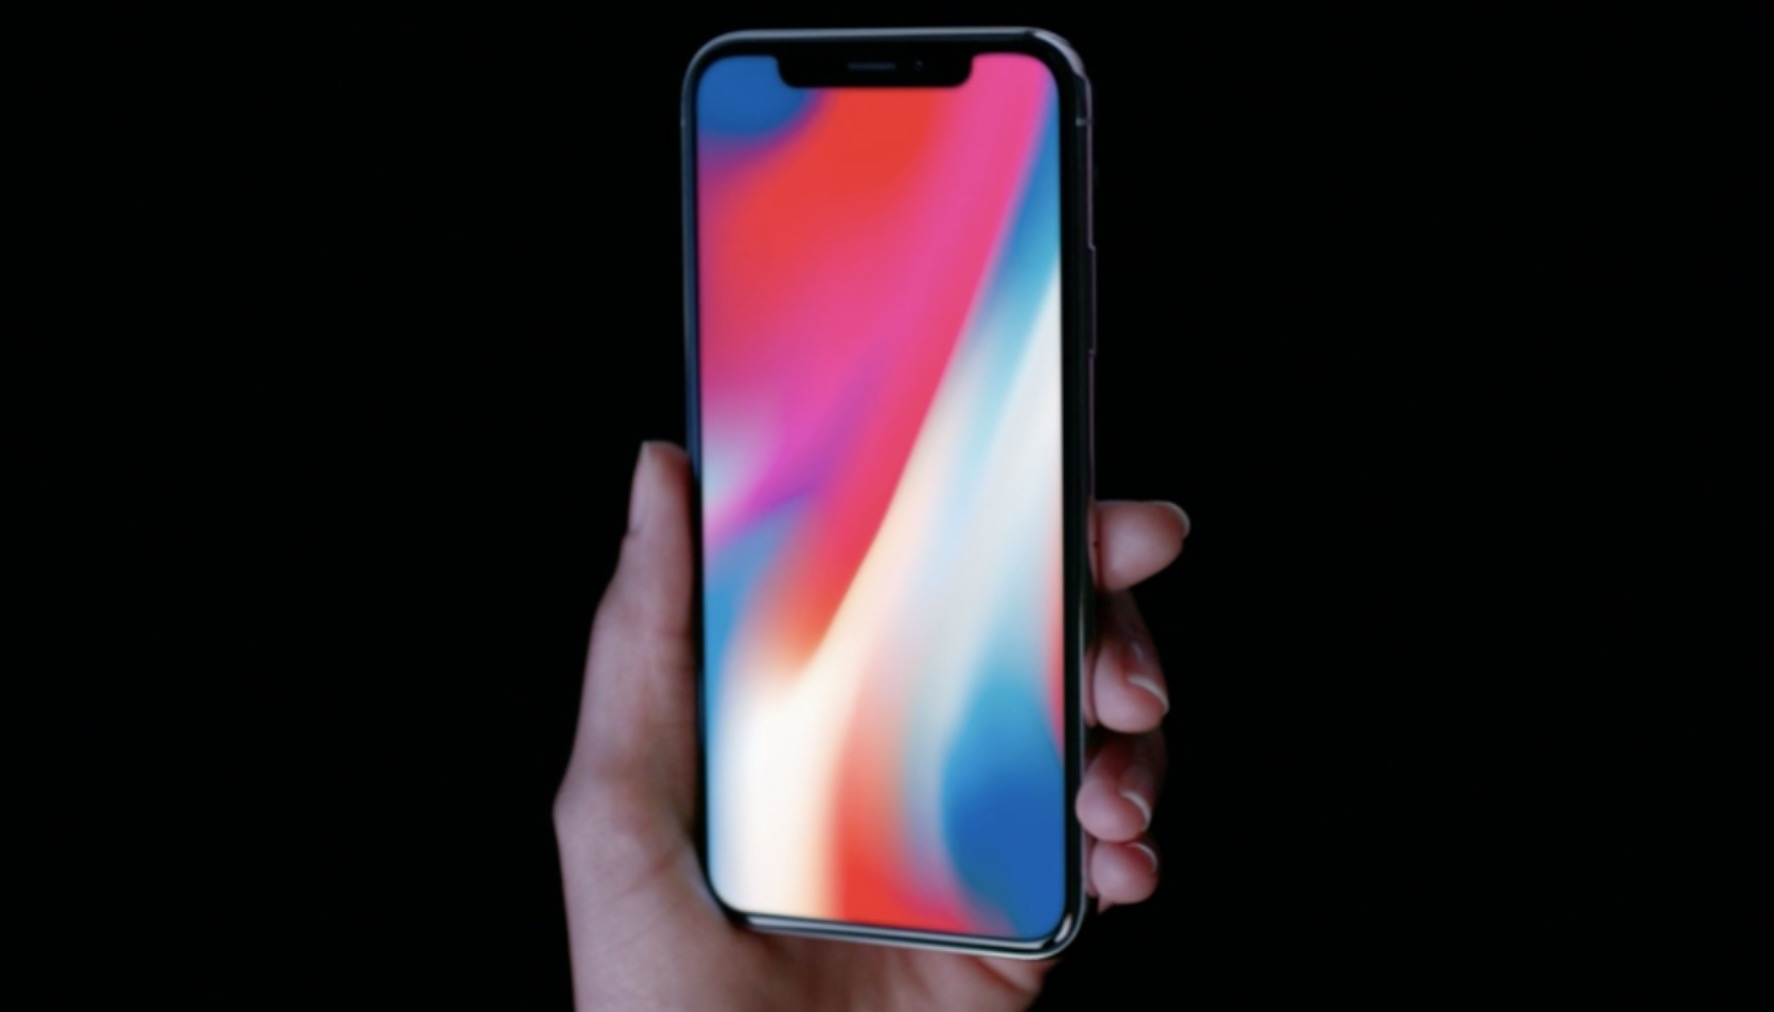 iPhone X processore A11 Bionic